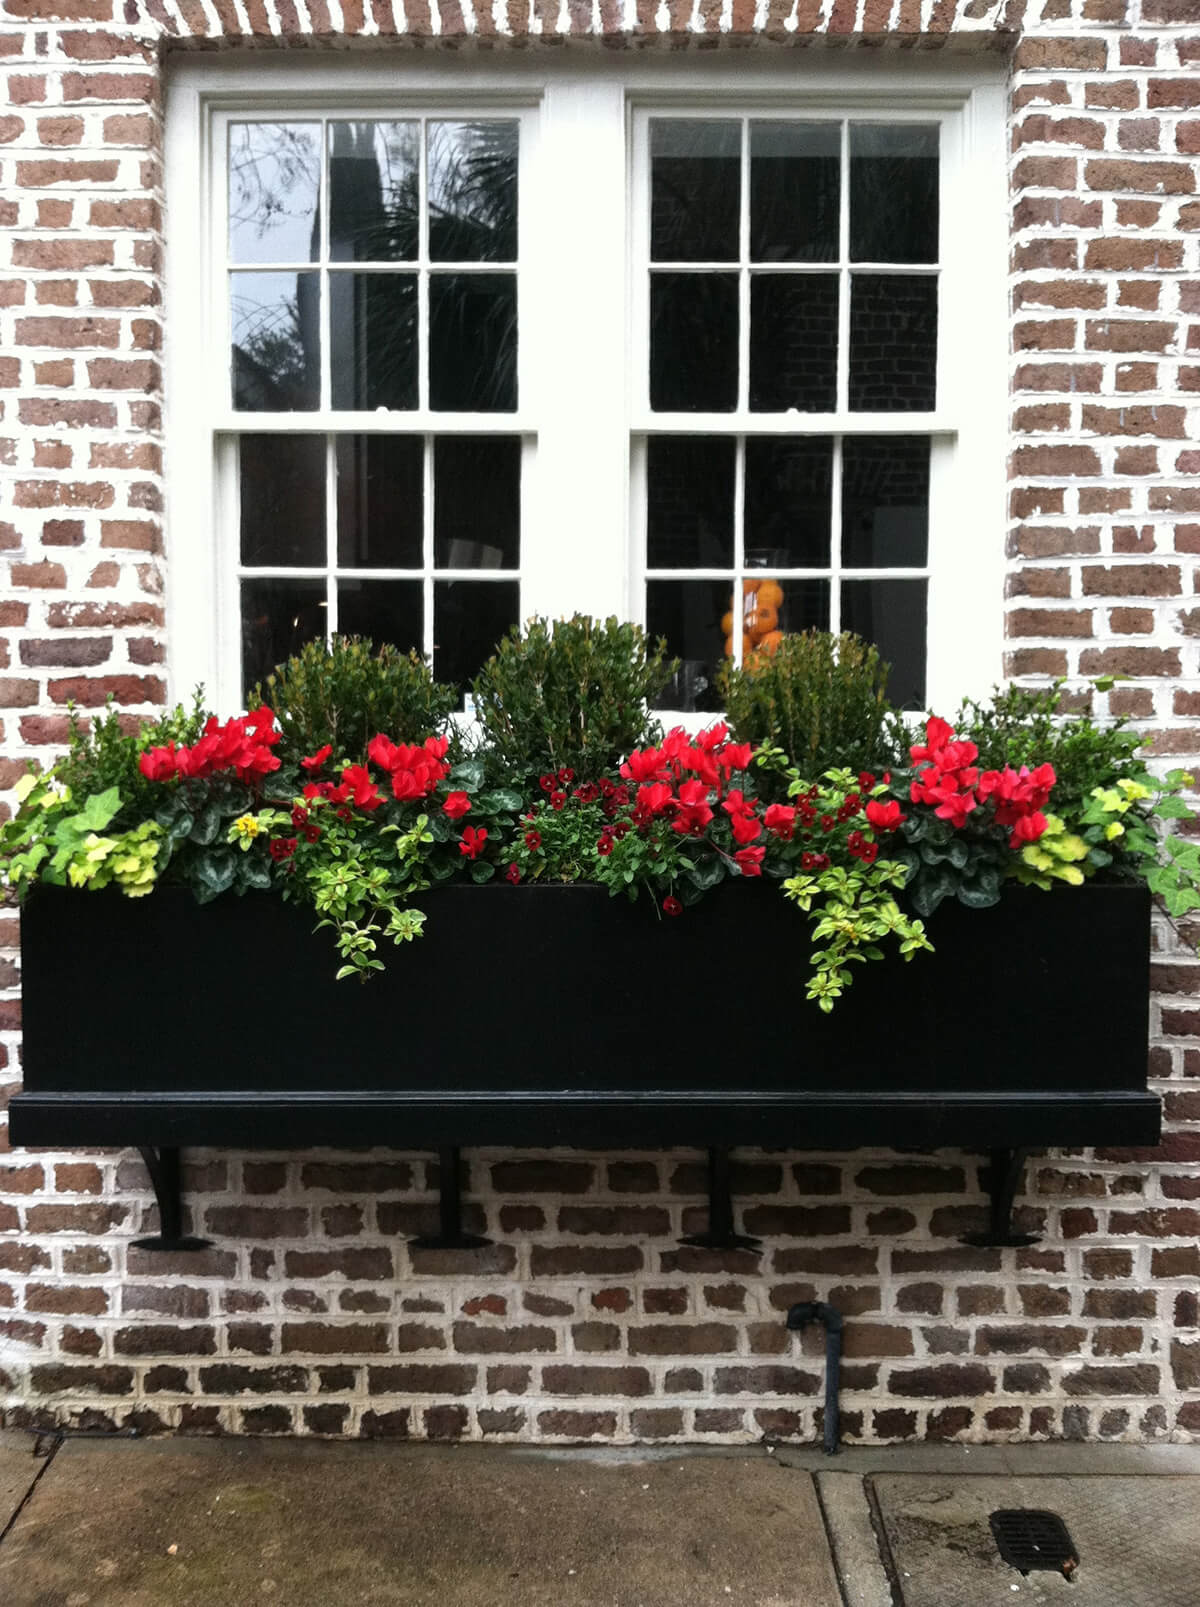 26 Window Box Planter Ideas To Brighten Up Your Home From The